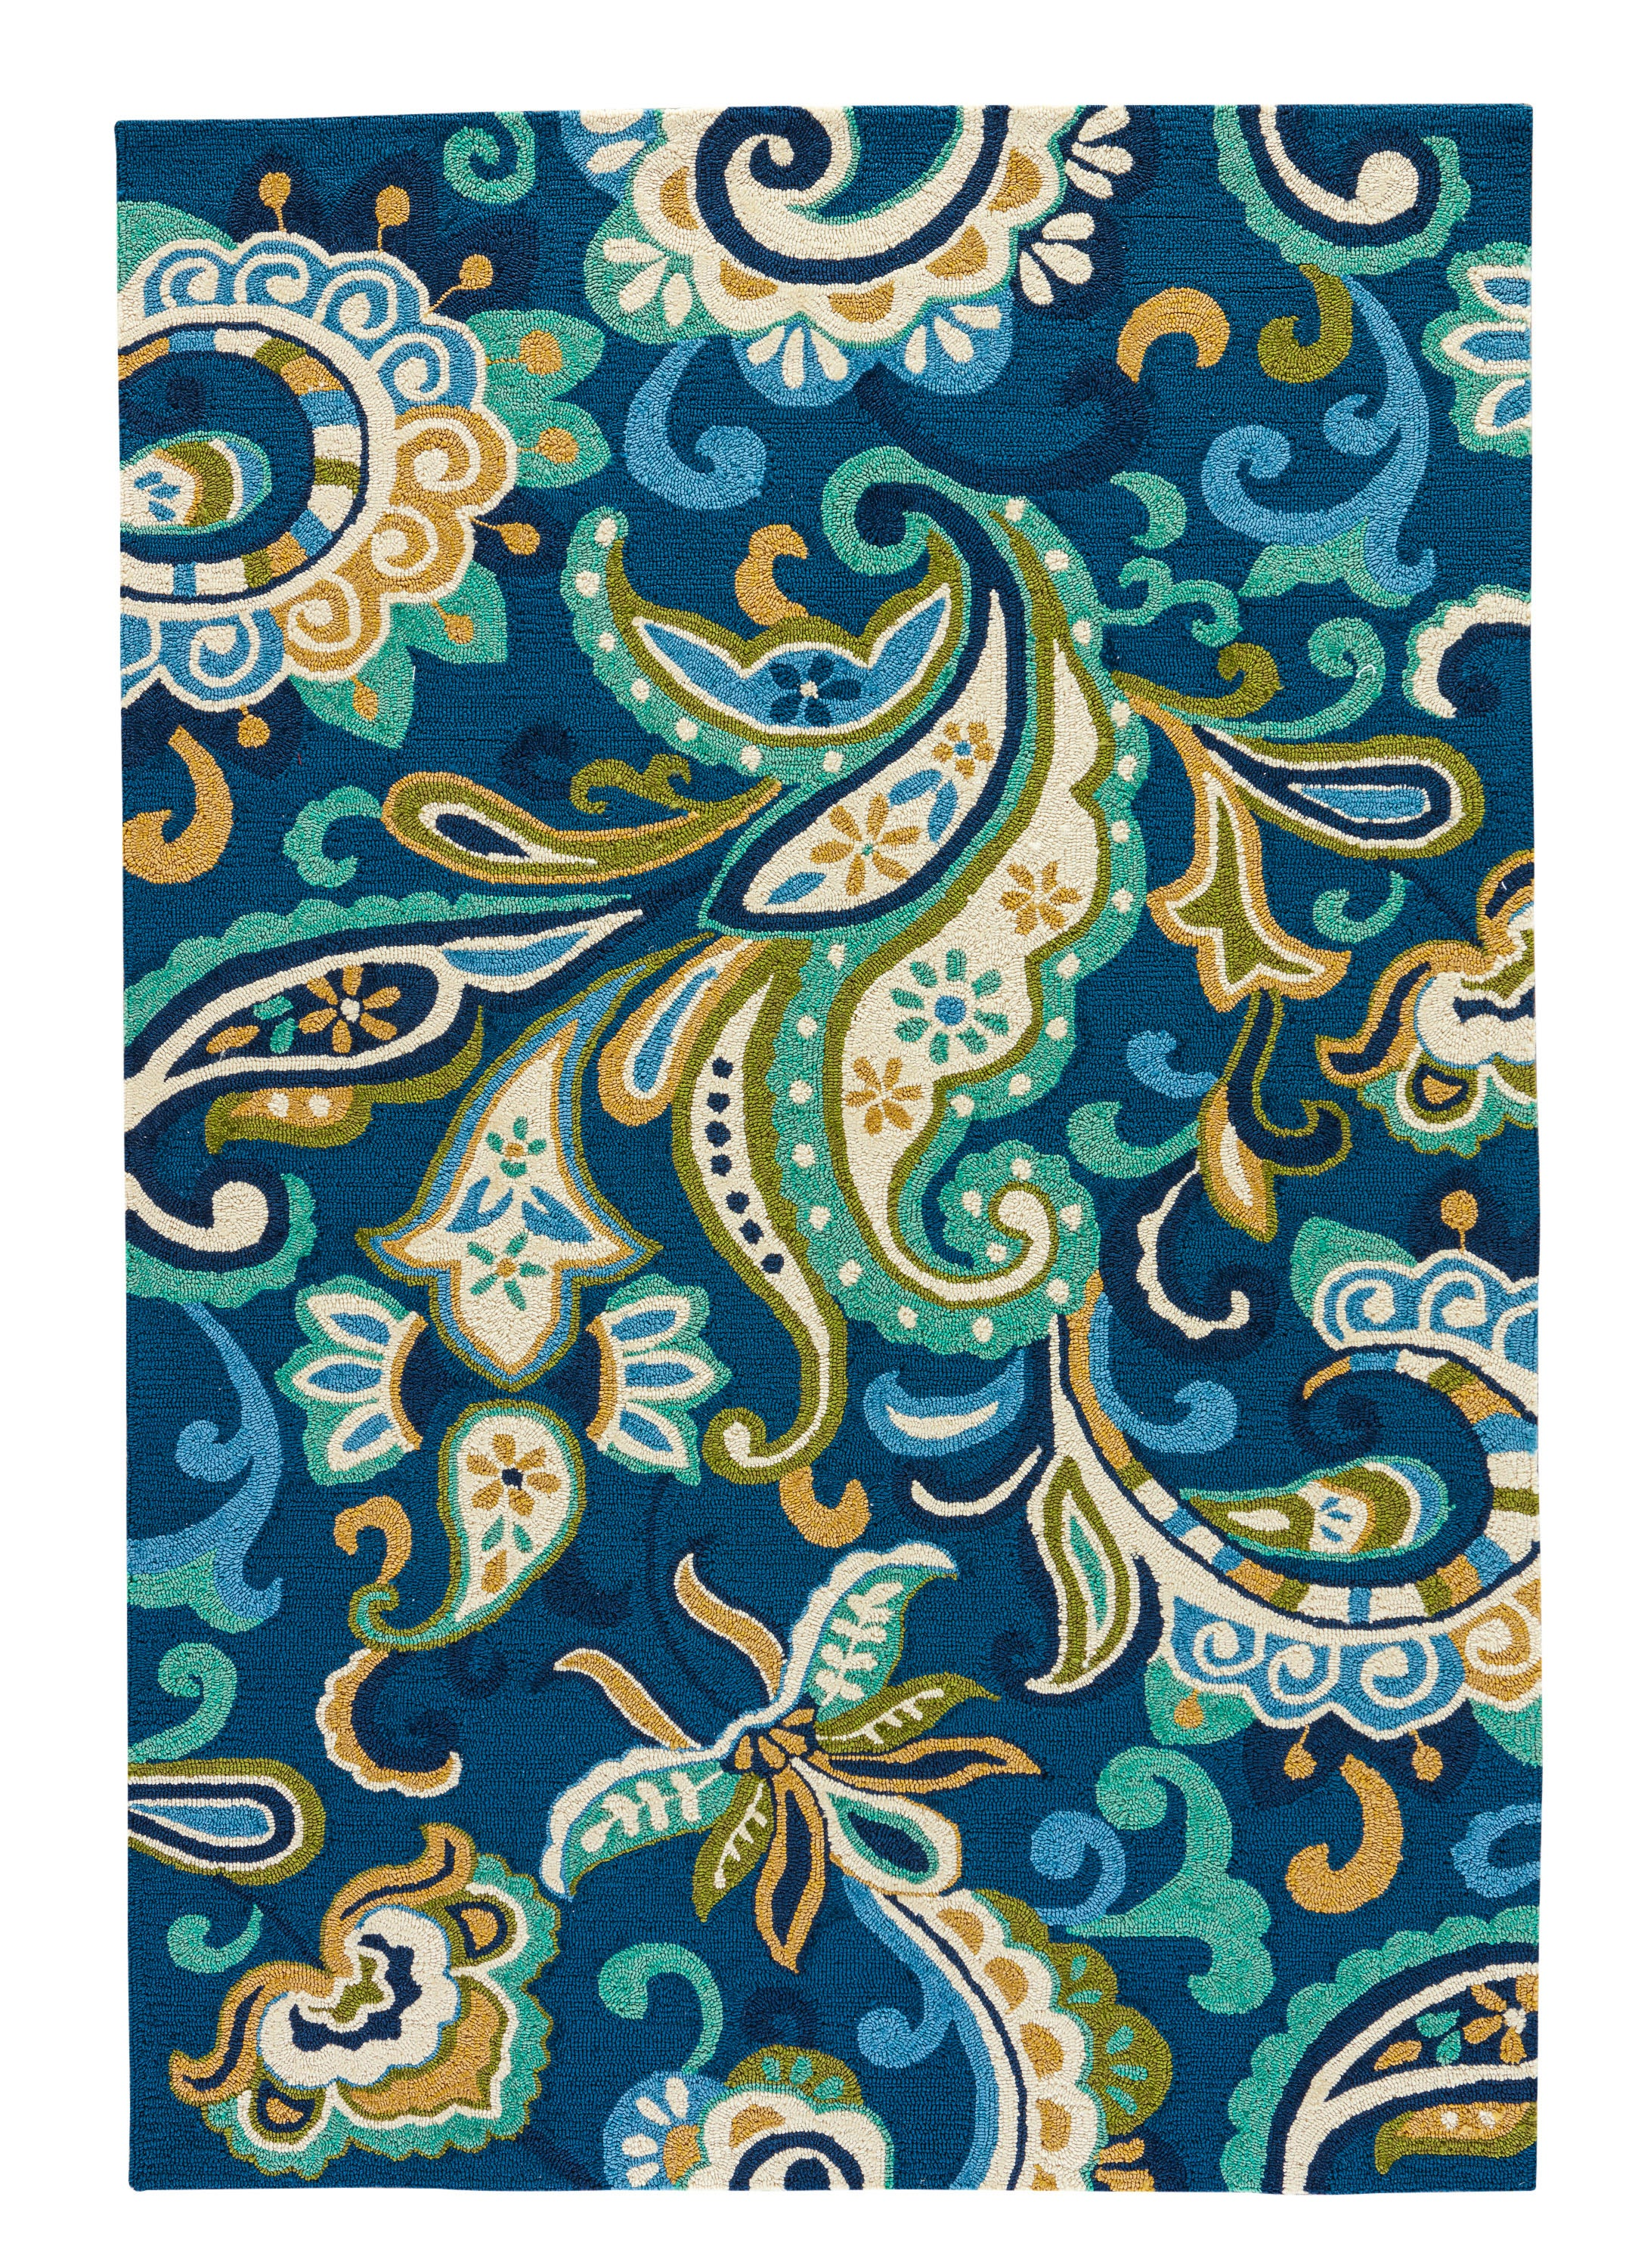 Rectangle Blue Floral Hand Hooked Synthetics Contemporary recommended for Kitchen, Bedroom, Bathroom, Outdoor, Dining Room, Office, Hallway, Living Room